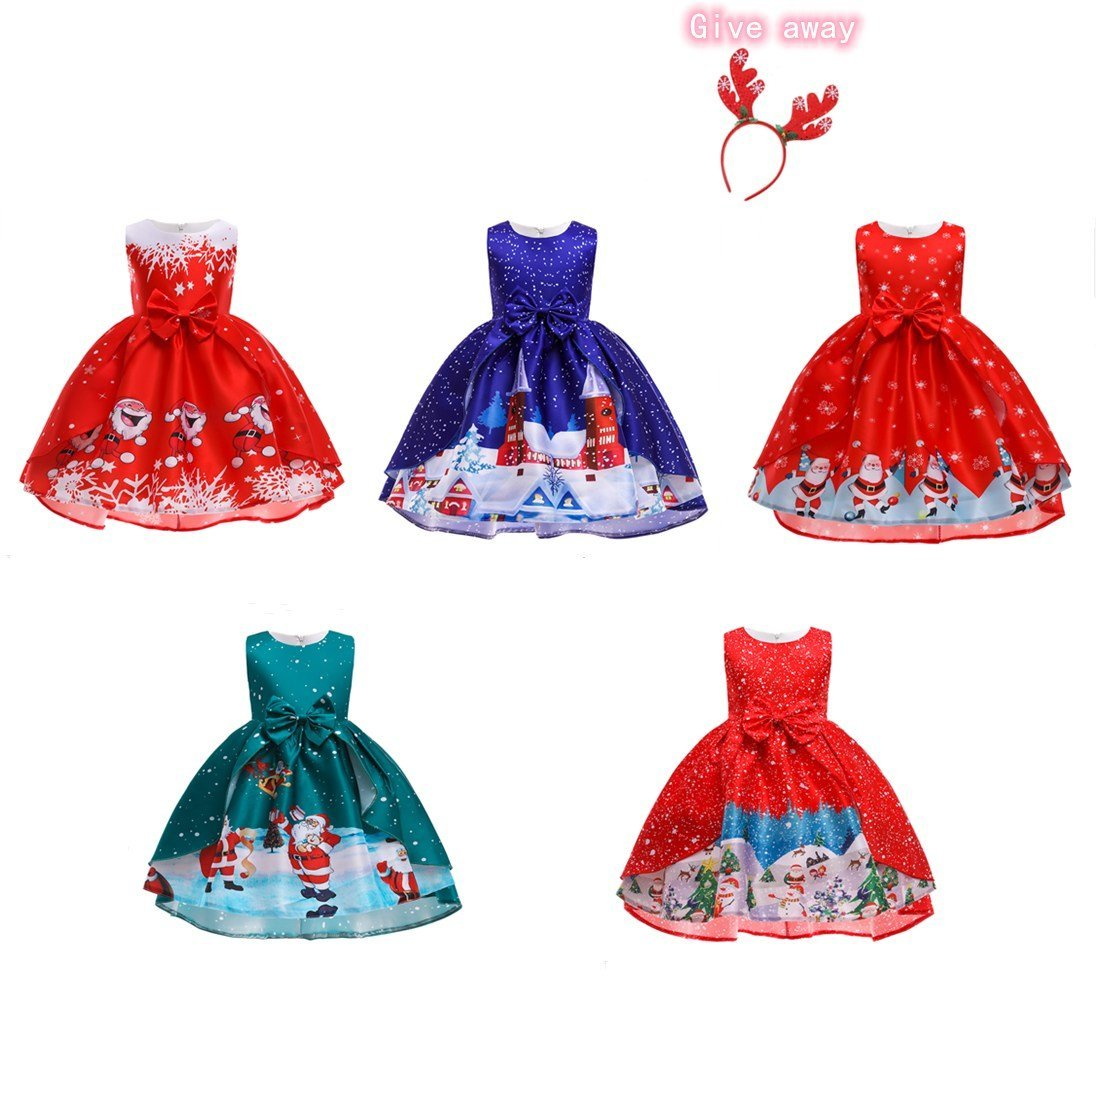 Christmas princess dress for little girls aged 3-10, with elk hair accessories